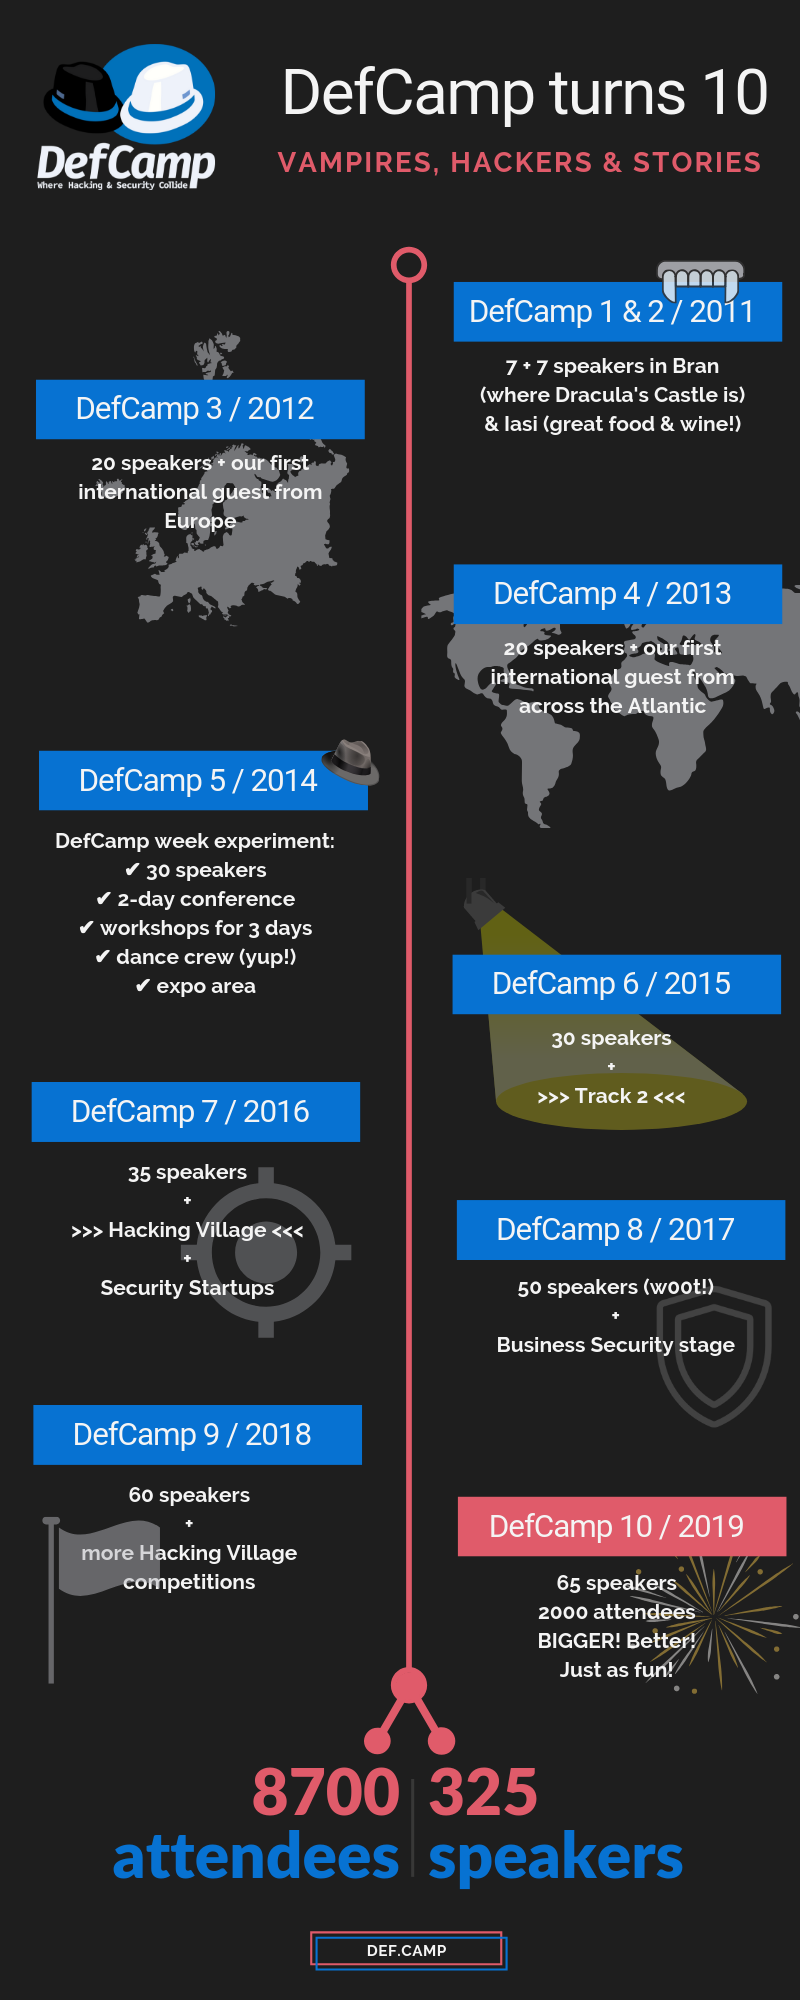 defcamp conference turns 10 infographic